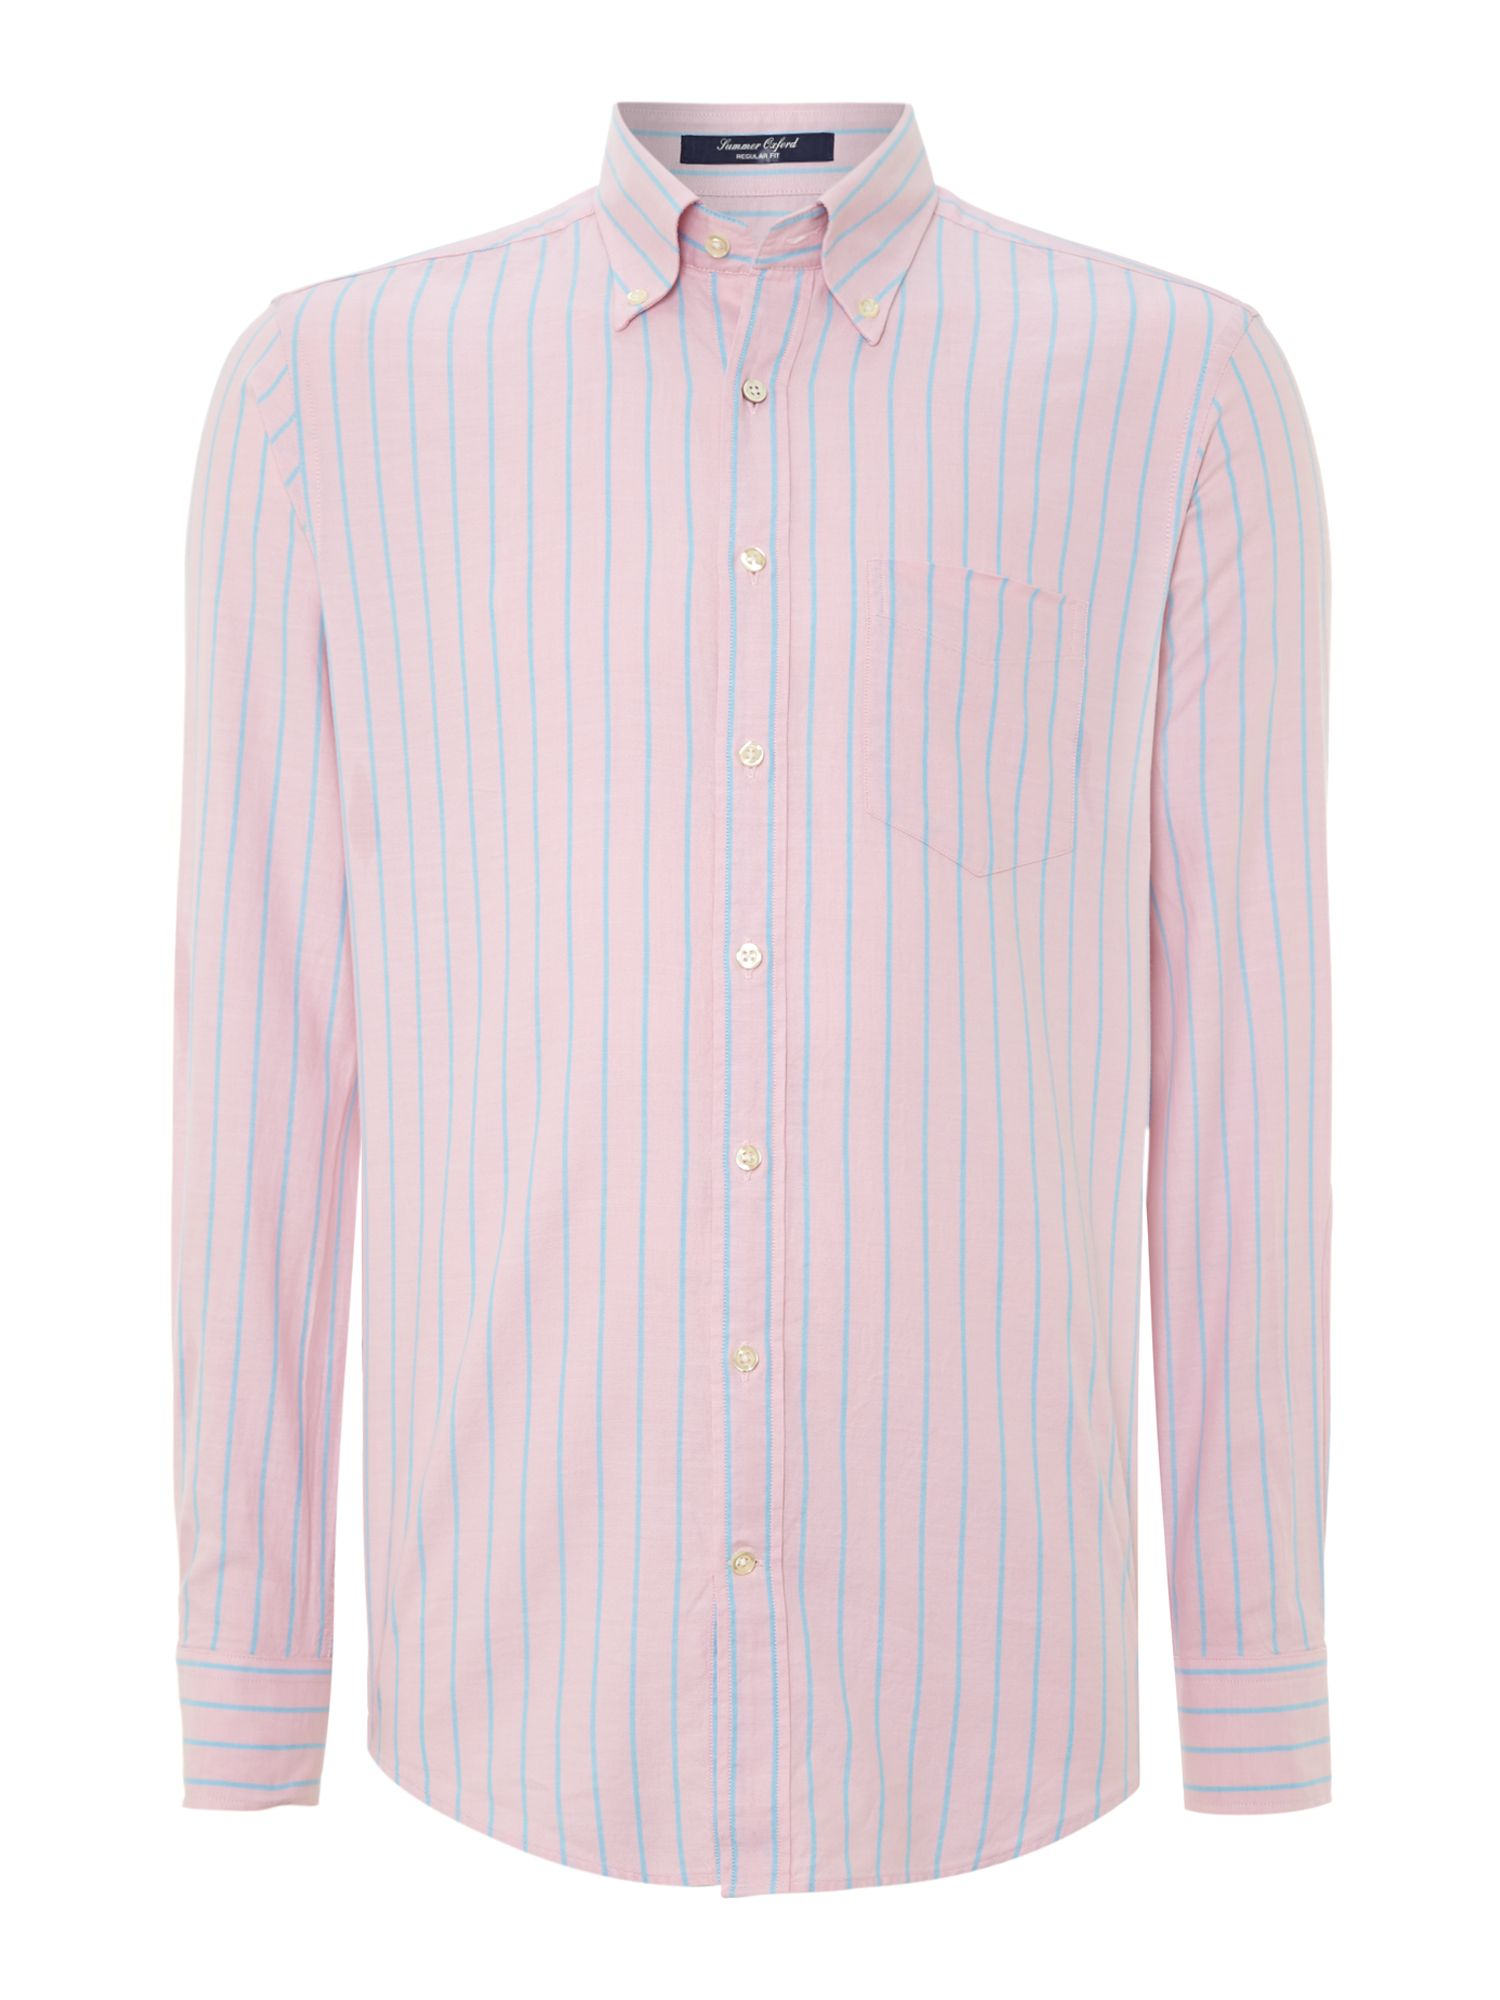 Long sleeve summer oxford shirt